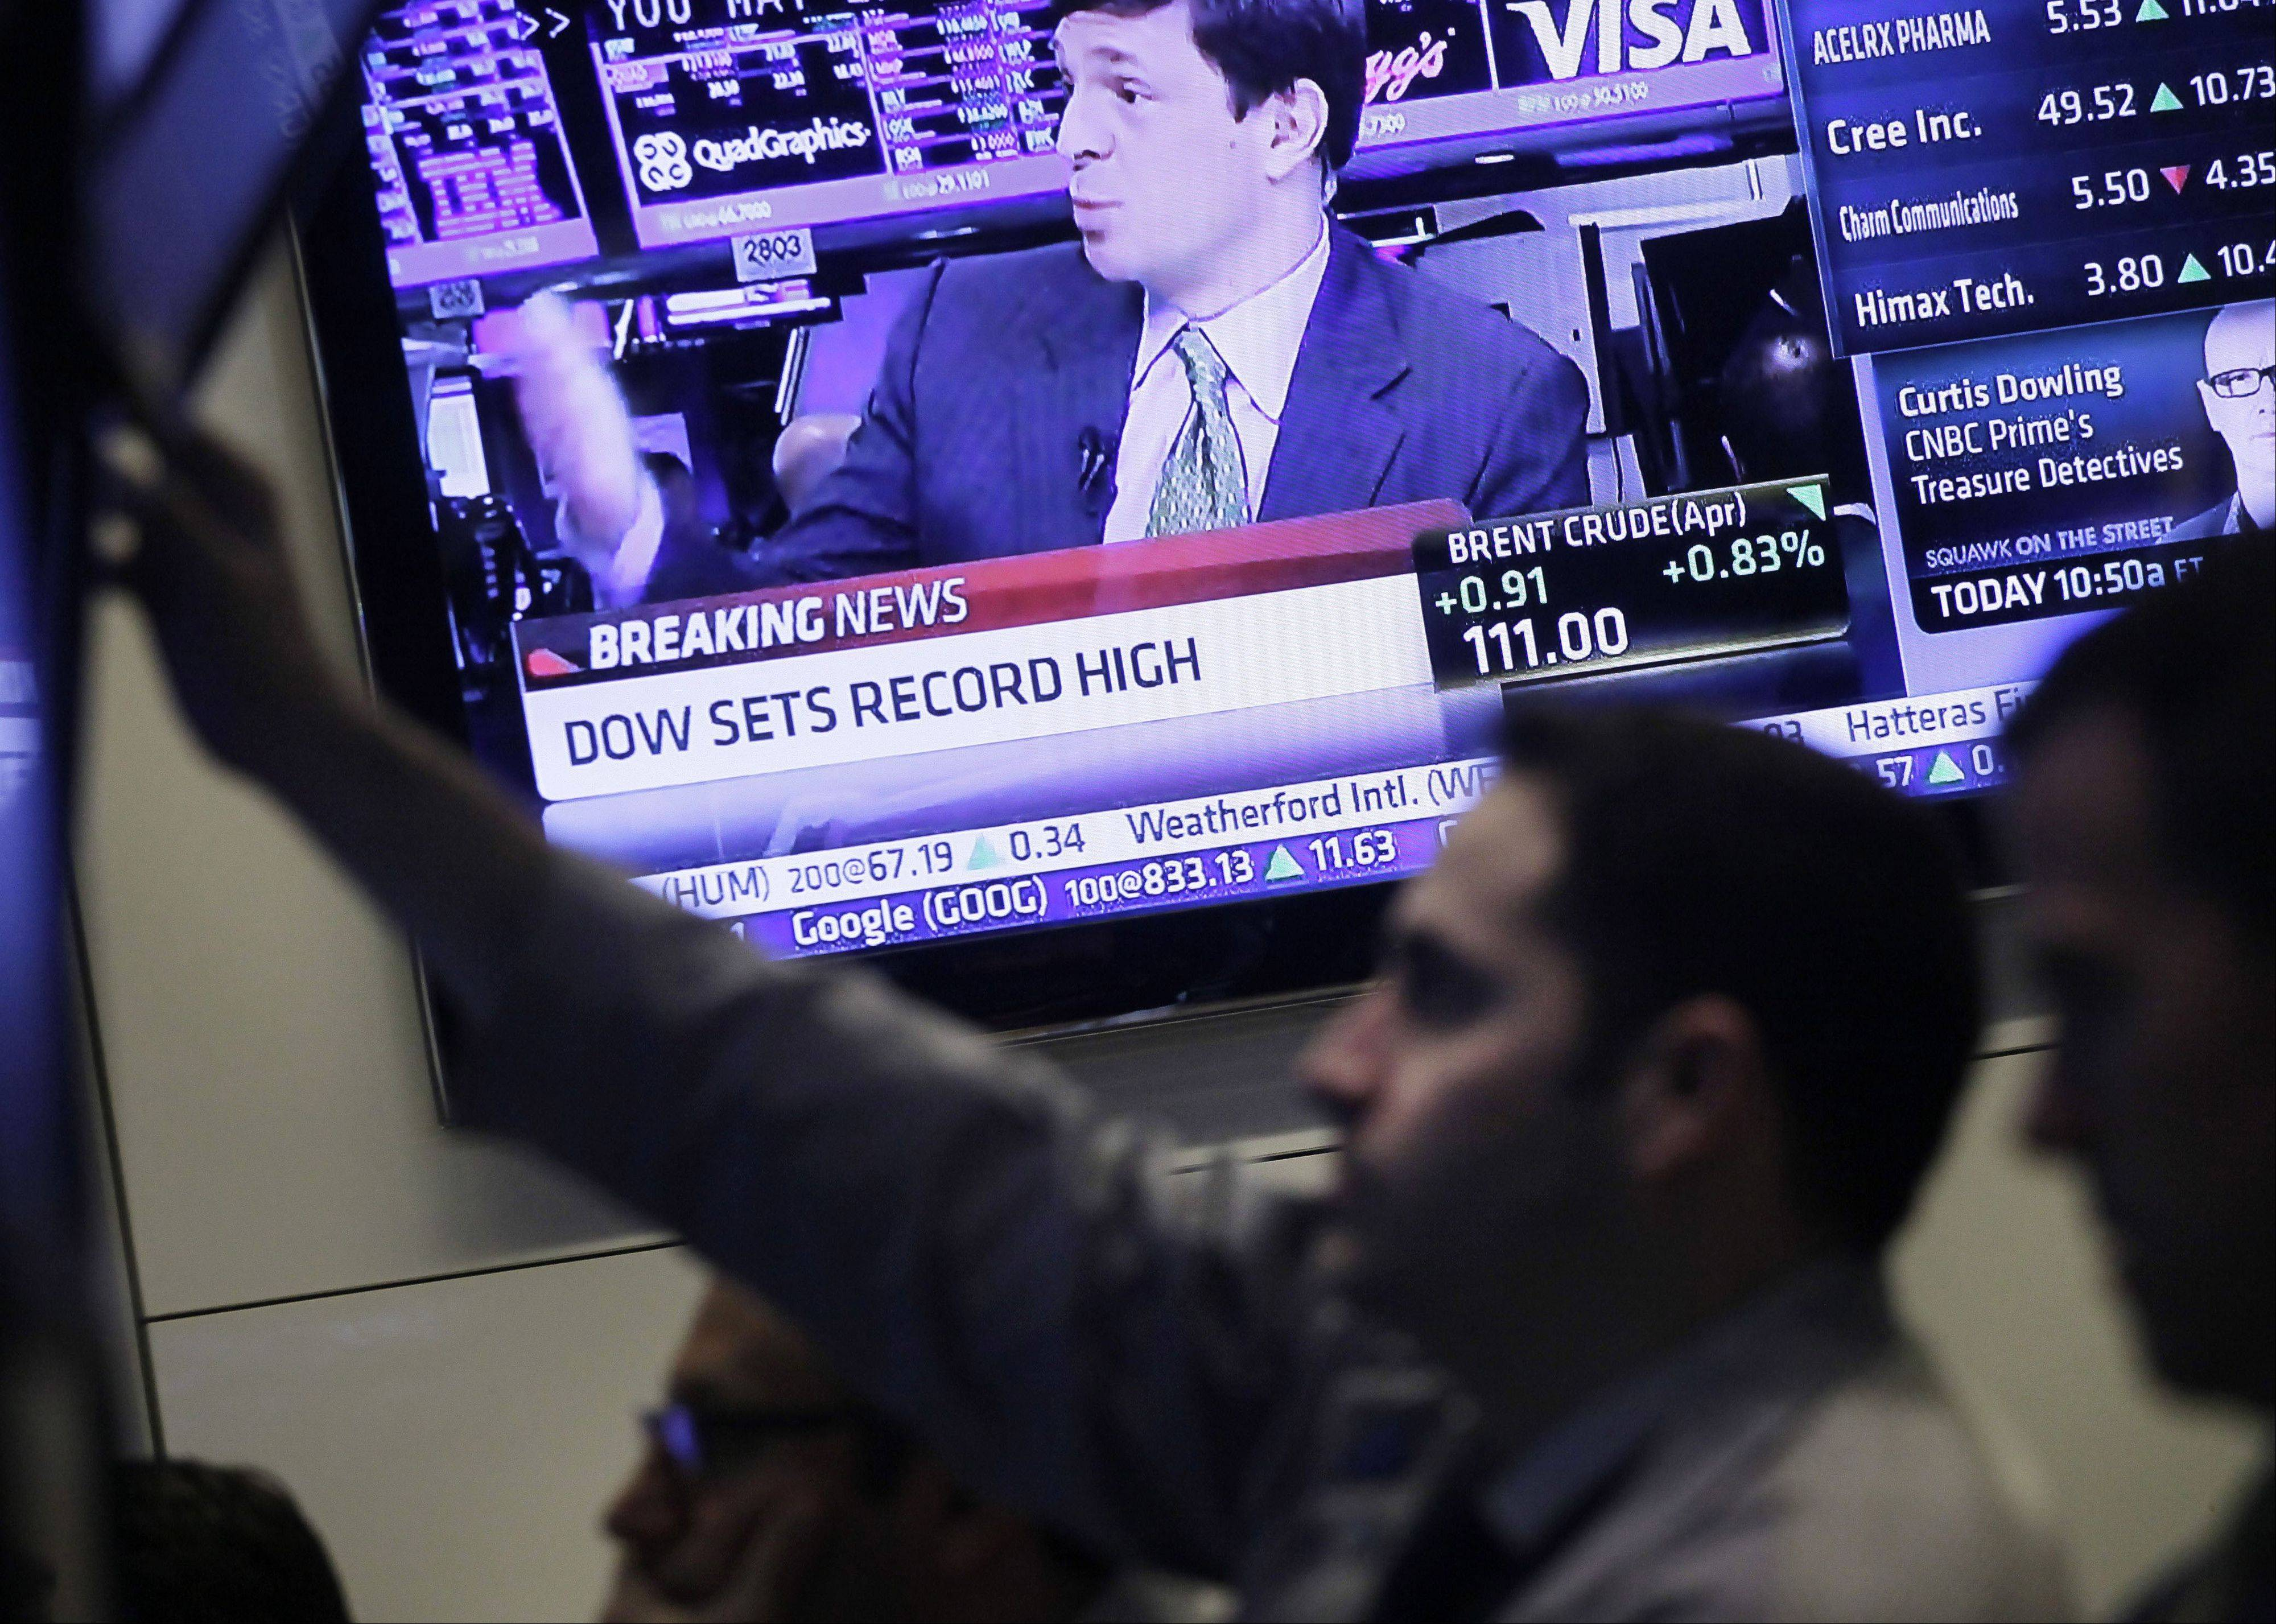 The Dow Jones industrial average jumped 126 points Tuesday to close at an all-time high, powered by China�s strong economic growth targets and a jump in European retail sales.